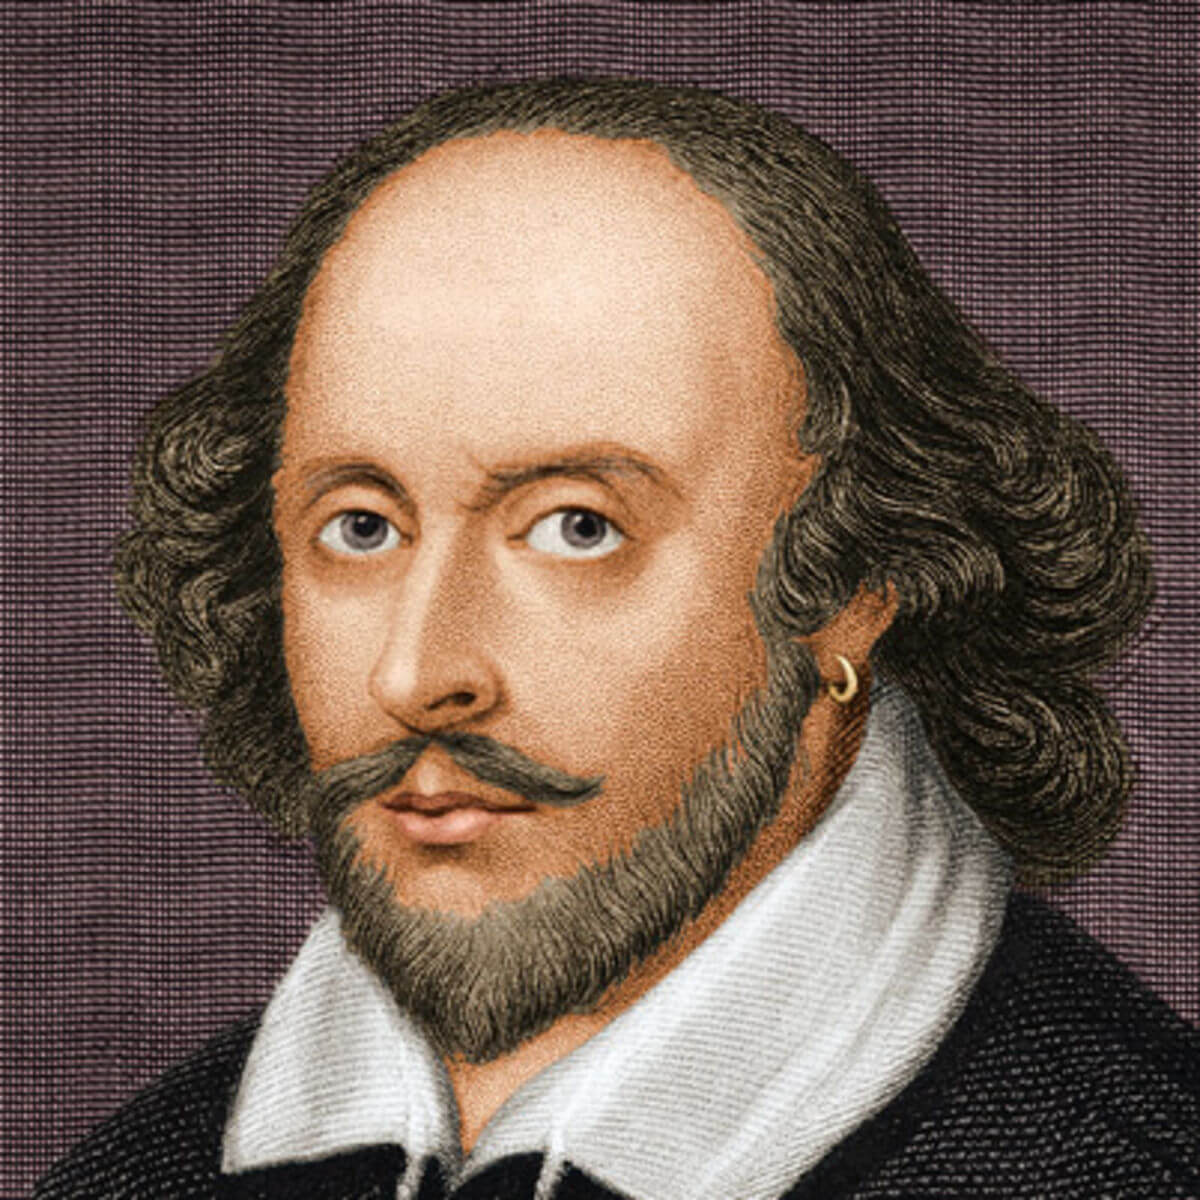 Frases Celebres William Shakespeare William Shakespeare Y Sus Frases Más Célebres Para Practicar Inglés